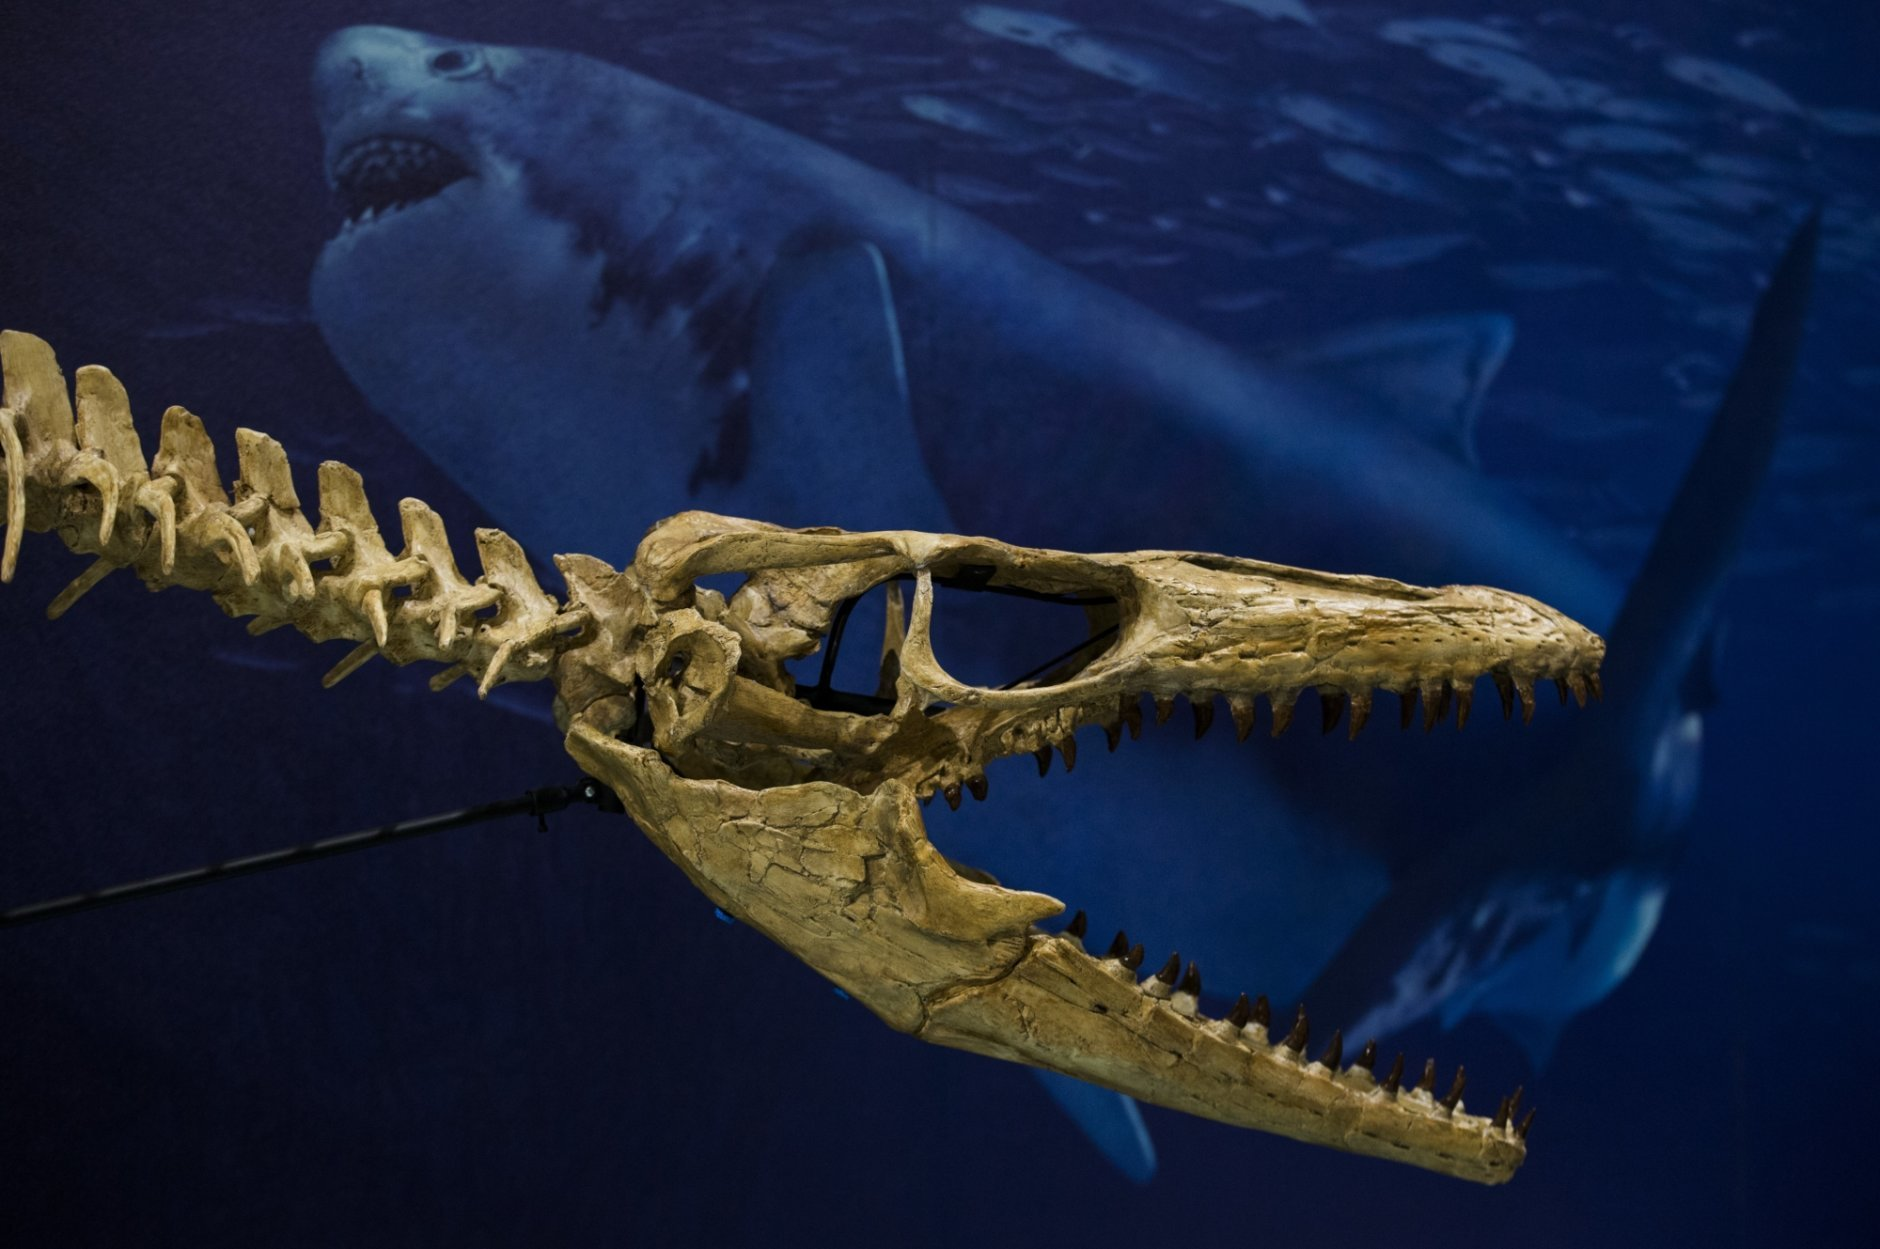 This Oct. 23, 2018 photo shows a recreated Prognathodon kianda skull in a Sea Monsters exhibit  at the Smithsonian National Museum of Natural History in Washington,. The exhibit features Angolan mosasaurs that SMU paleontologists Louis Jacobs and Michael Polcyn and their team have unearthed over the last decade.   (Ashley Landis/The Dallas Morning News via AP)